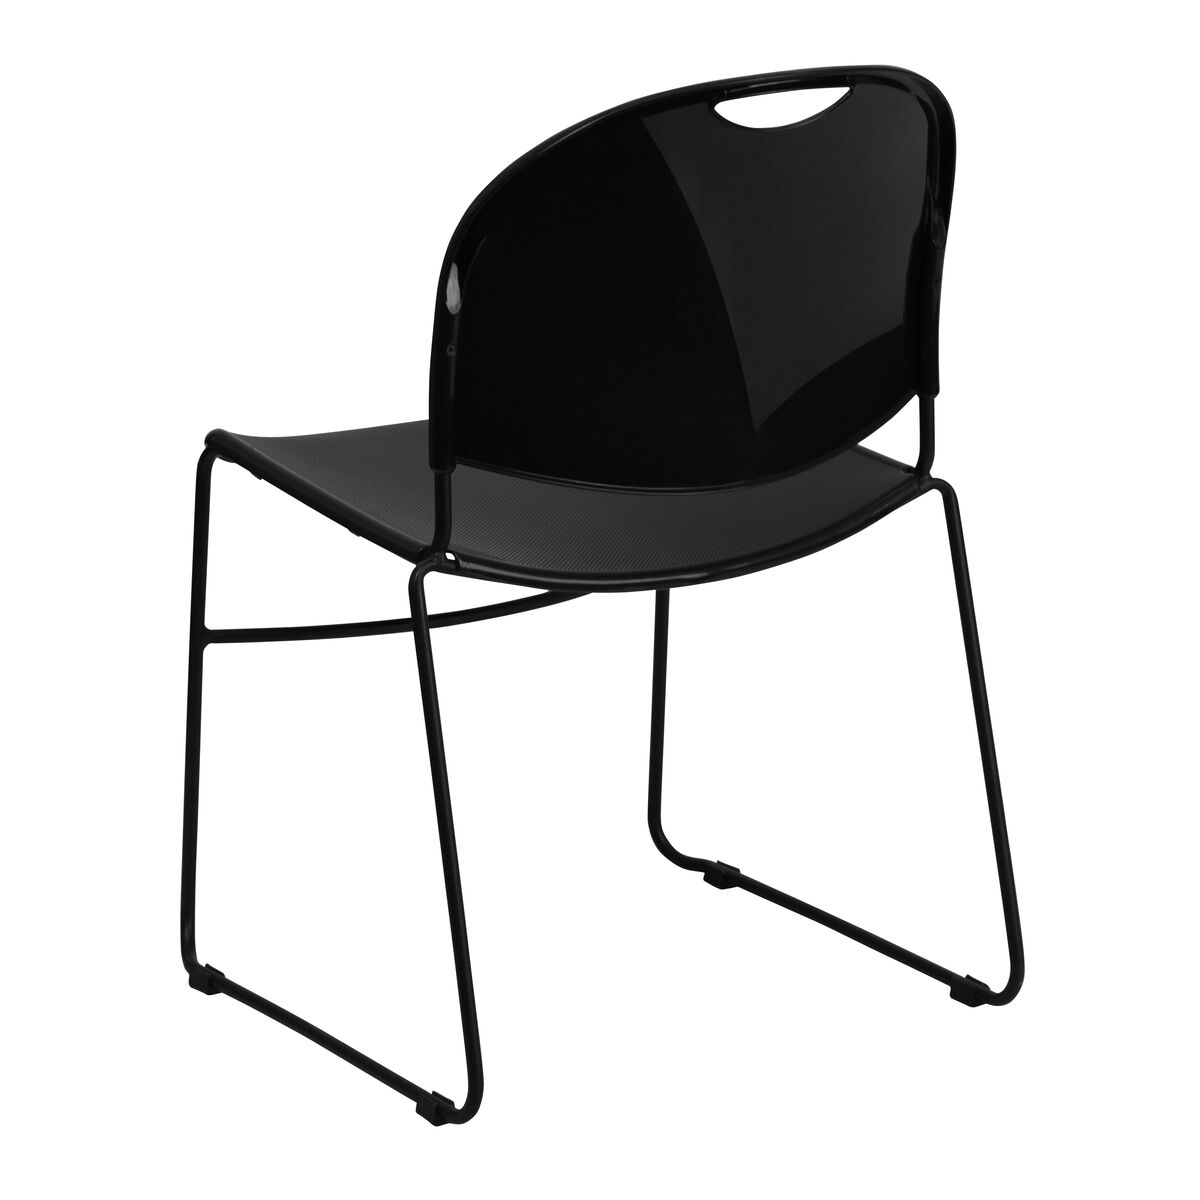 Black Stack Chair-Black Frame RUT-188-BK-GG | StackChairs4Less.com